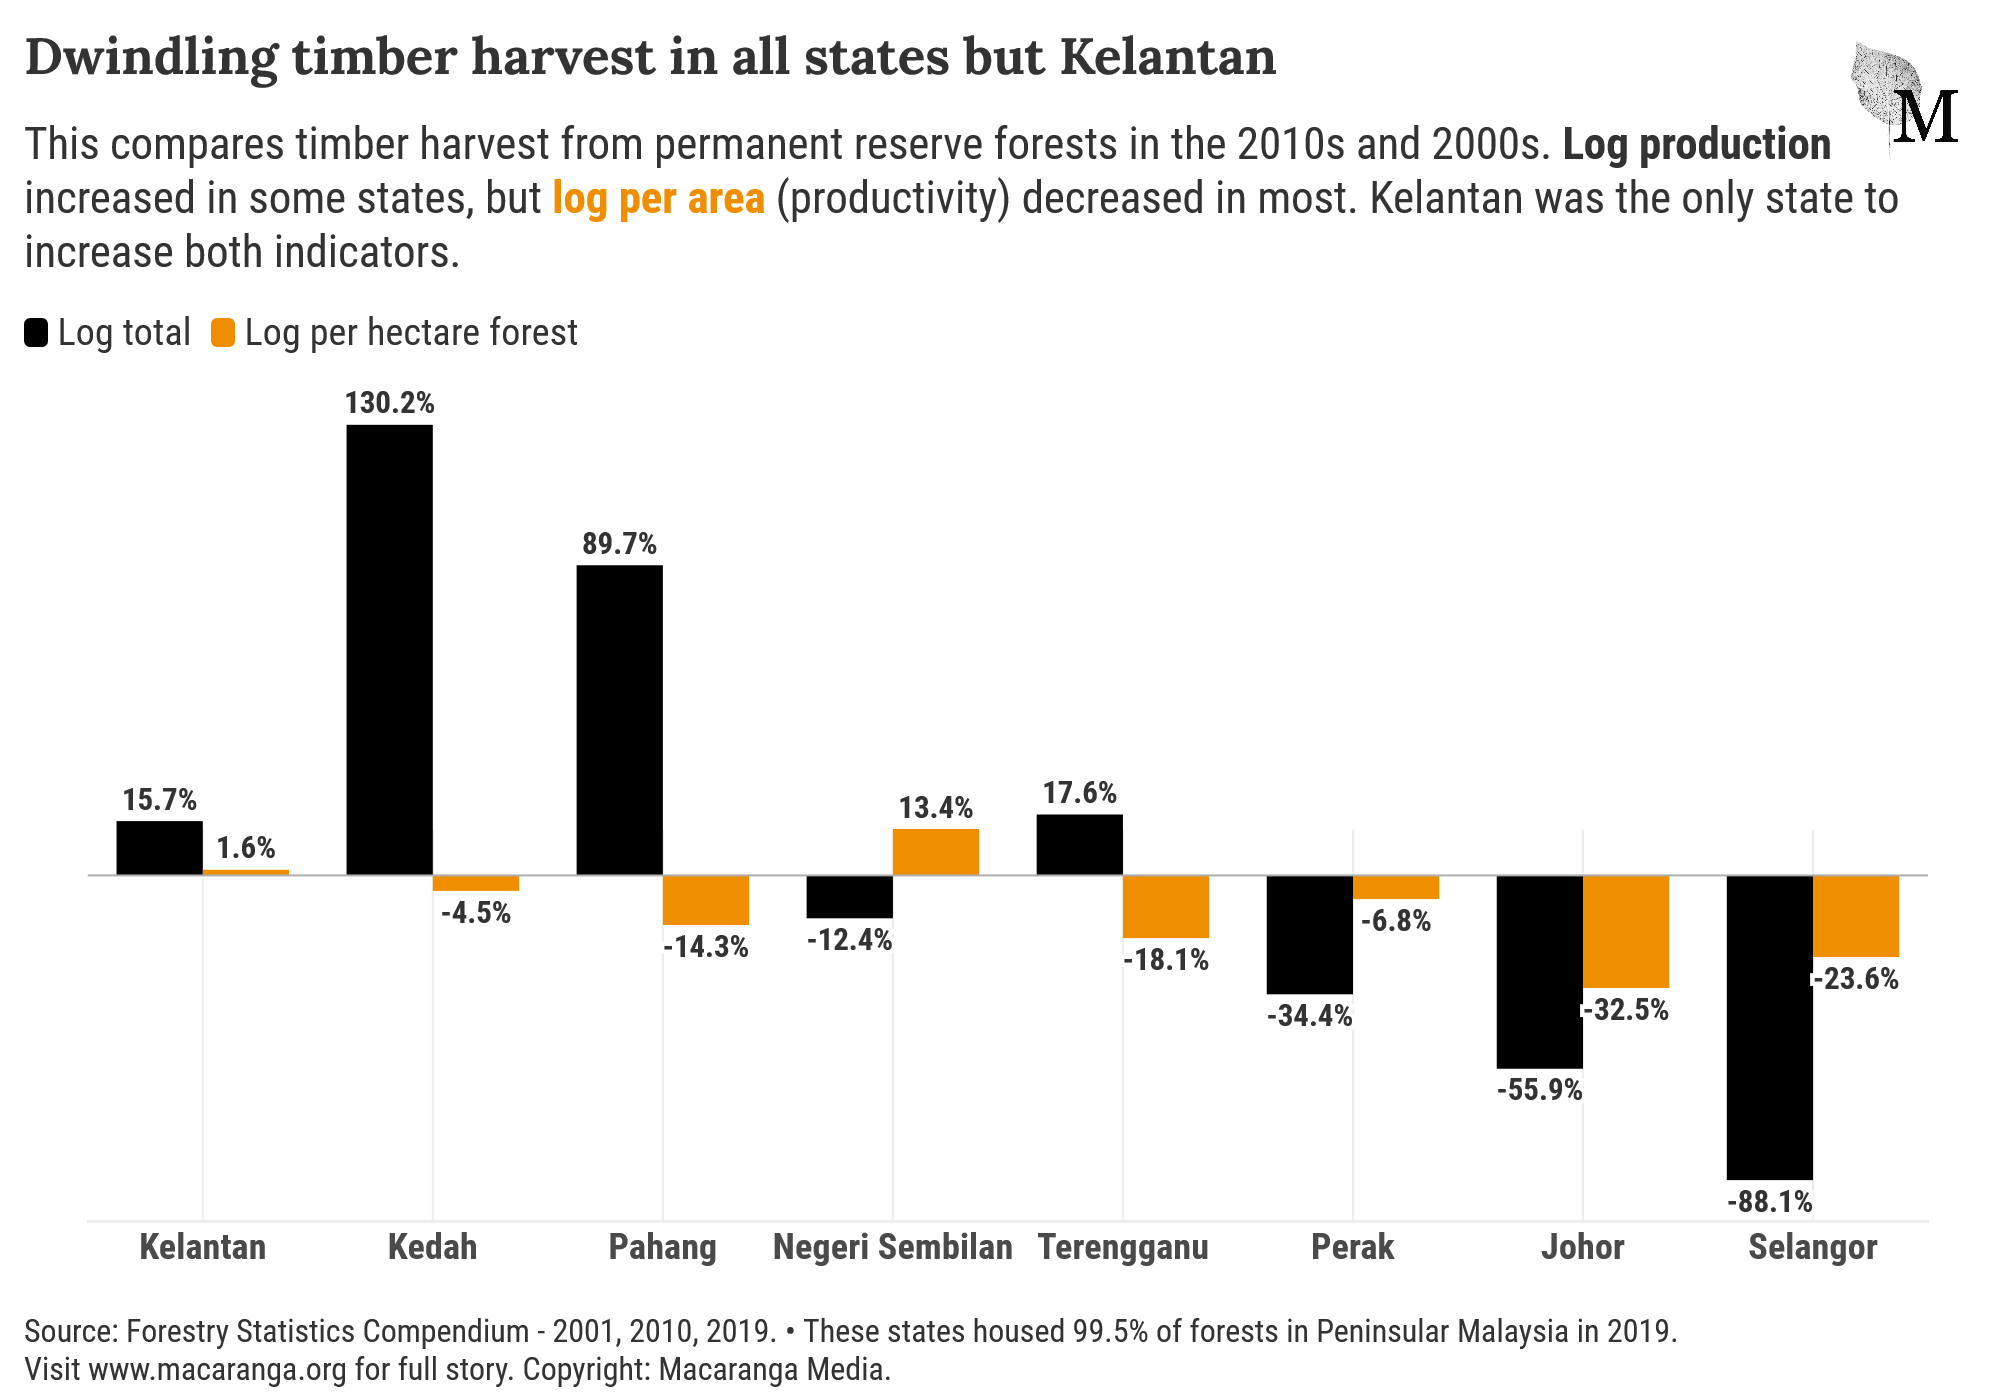 All states in Peninsular Malaysia but Kelantan saw declines in timber harvest in the 2010s compared to the 2000s.